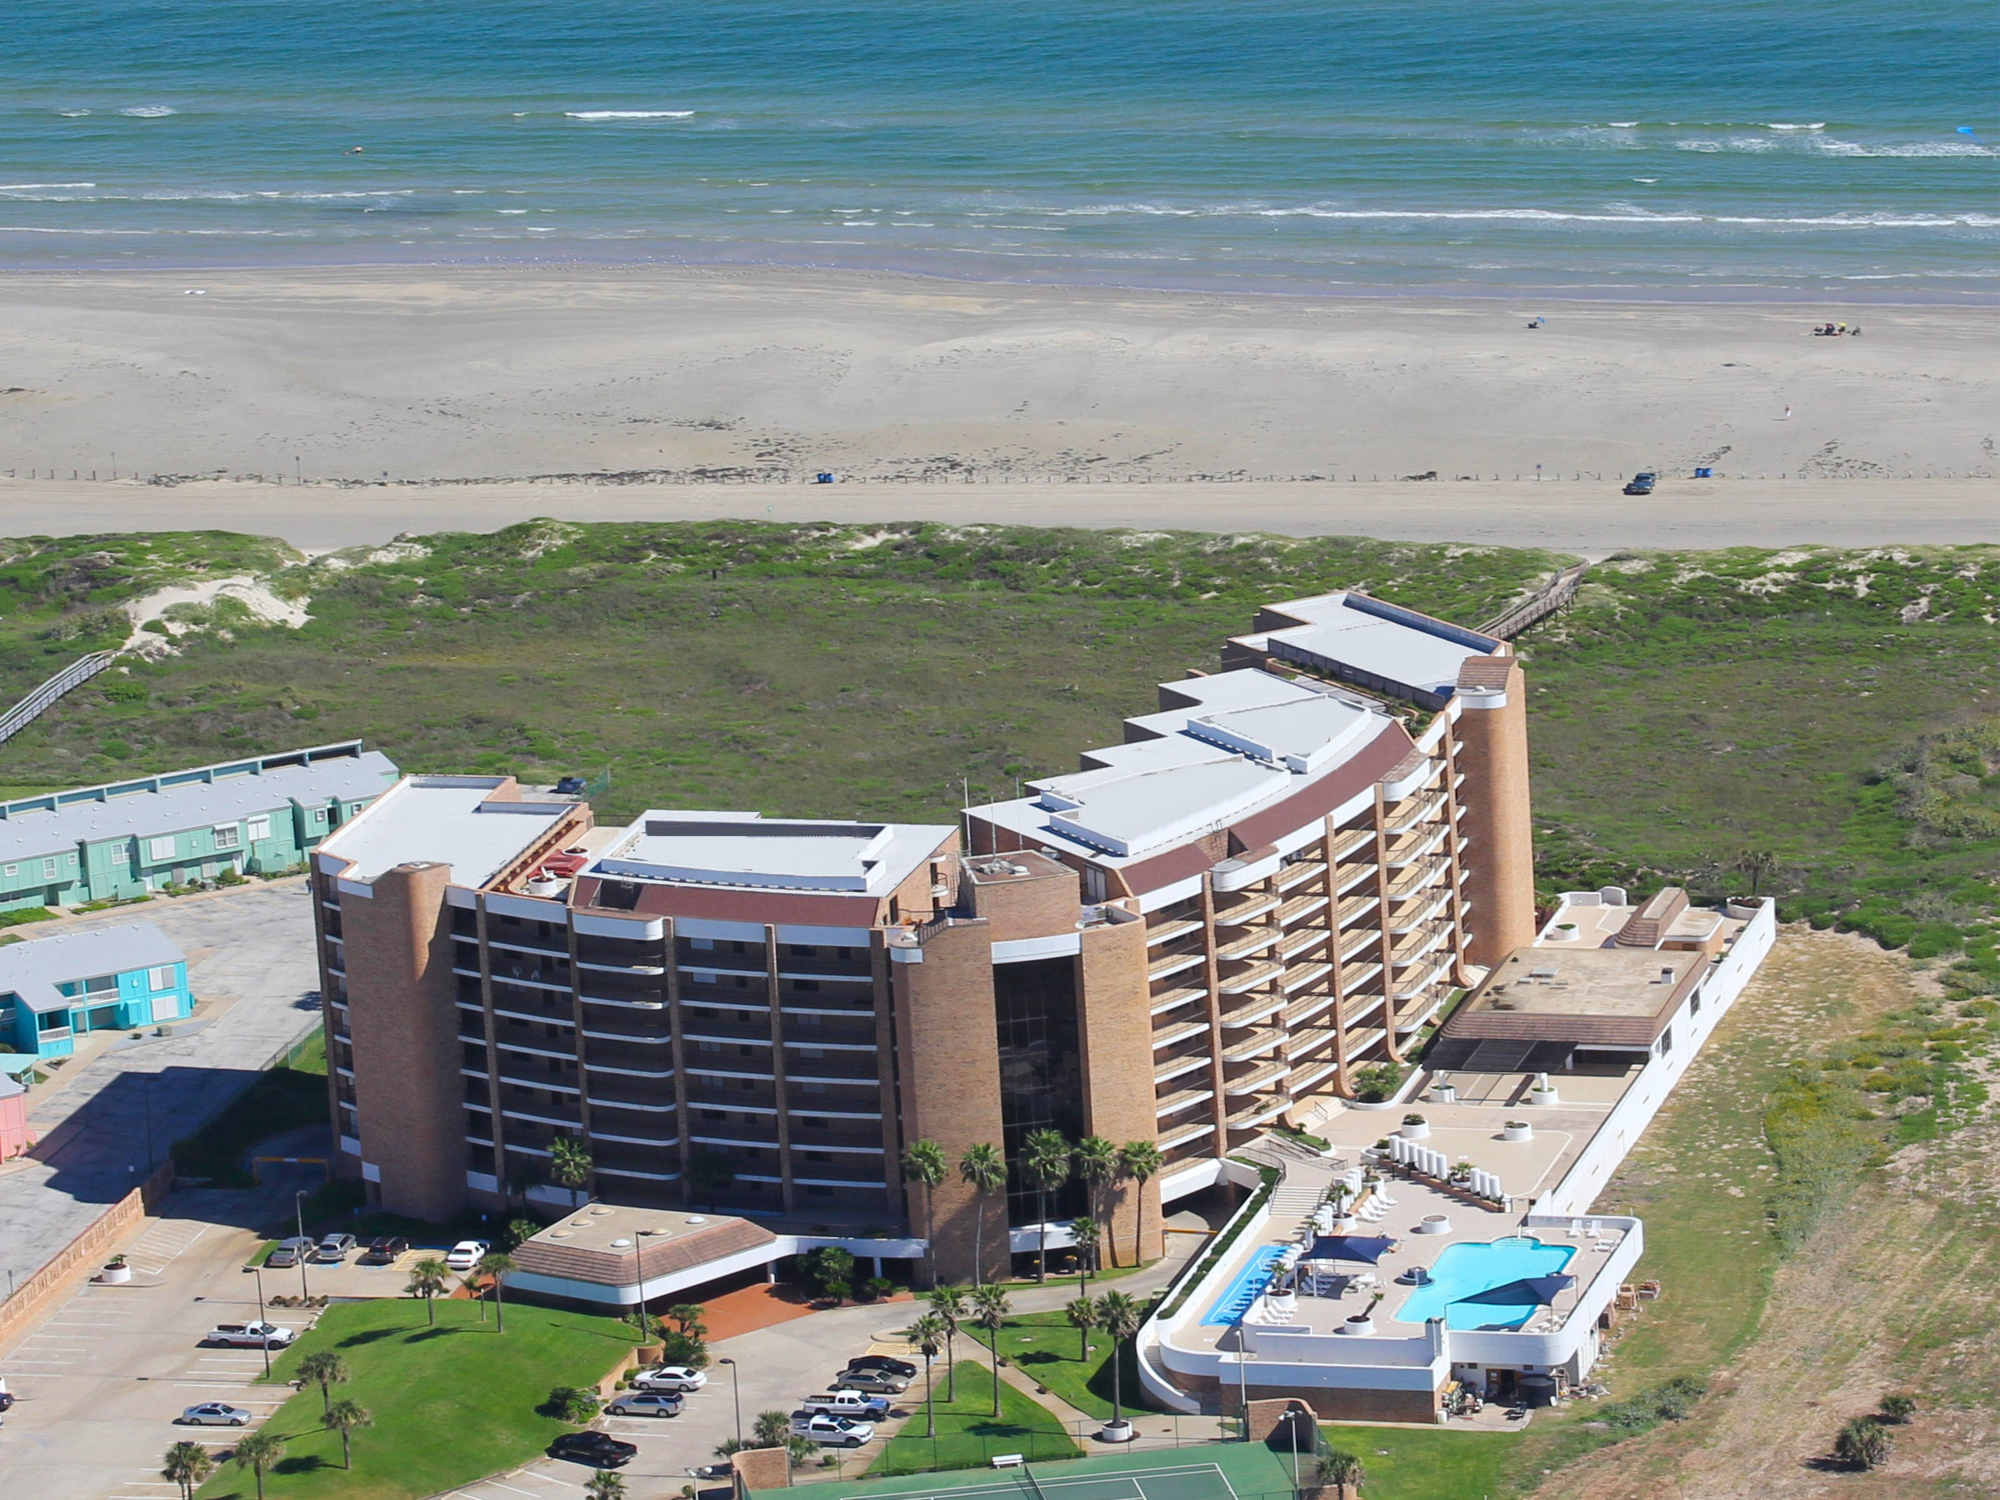 Port aransas beachfront resorts portaransas for Port a texas